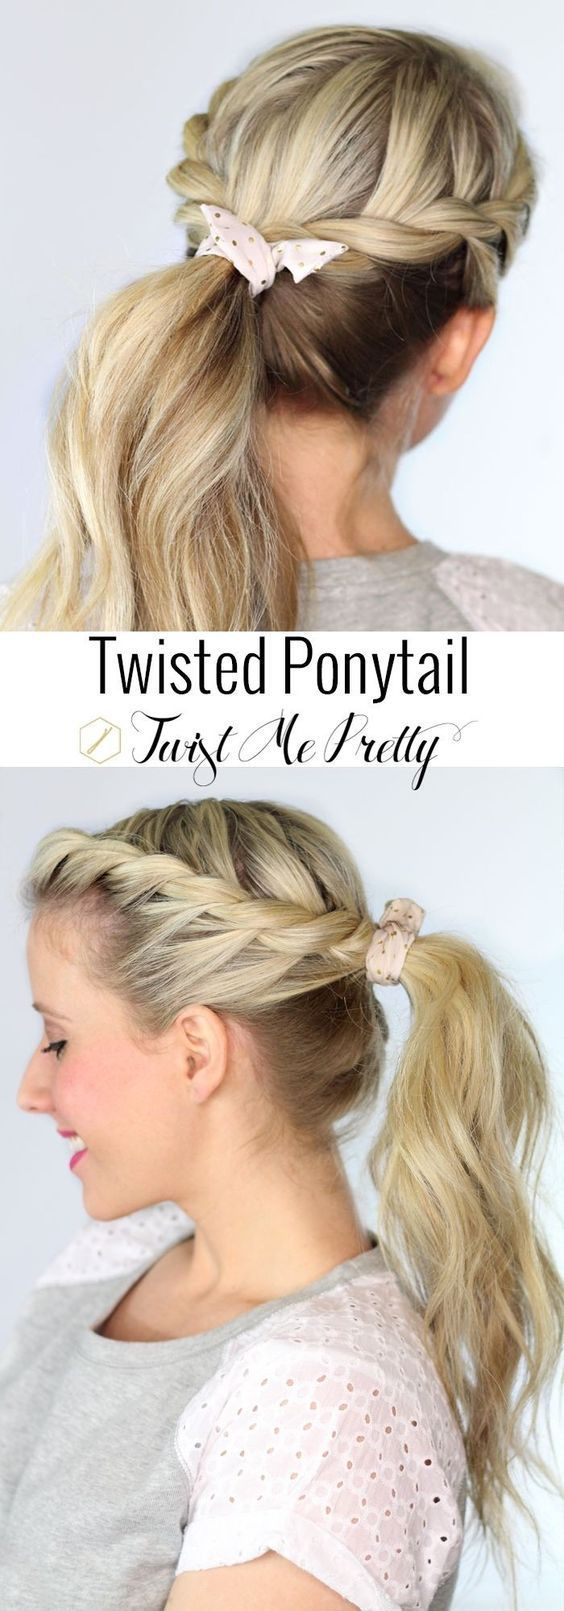 never underestimate the influence of hairstyles for